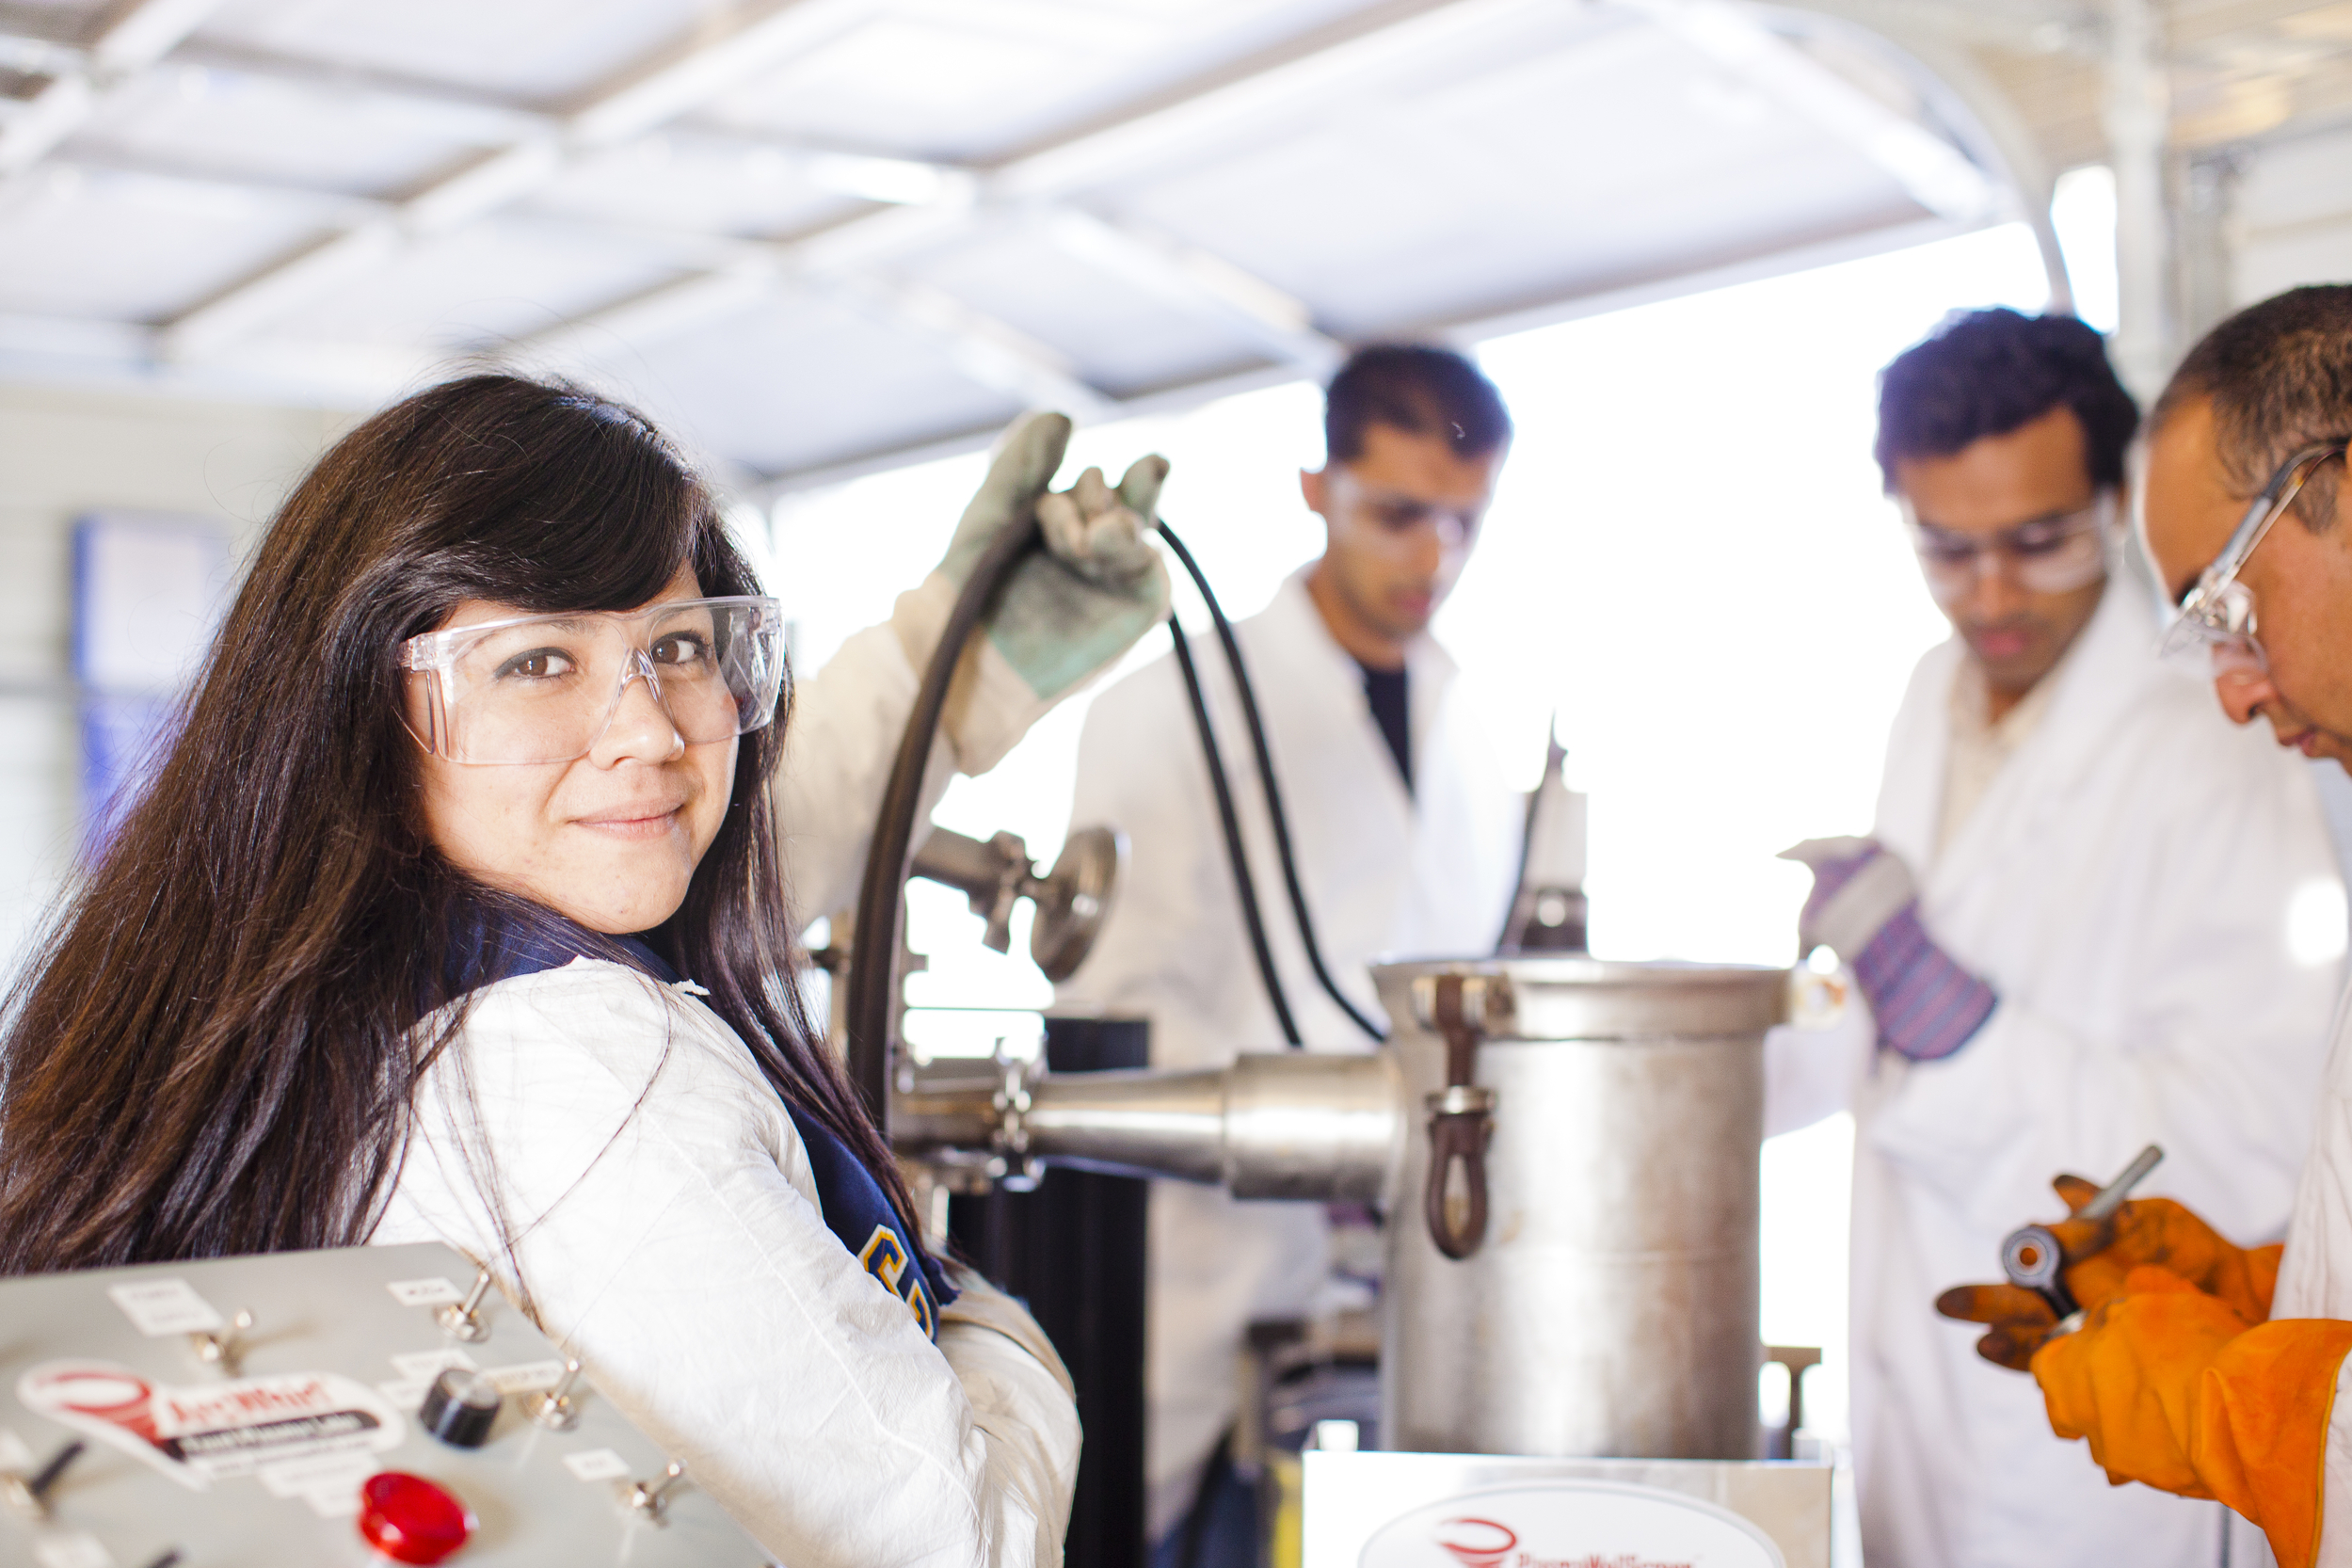 UC Merced student in lab